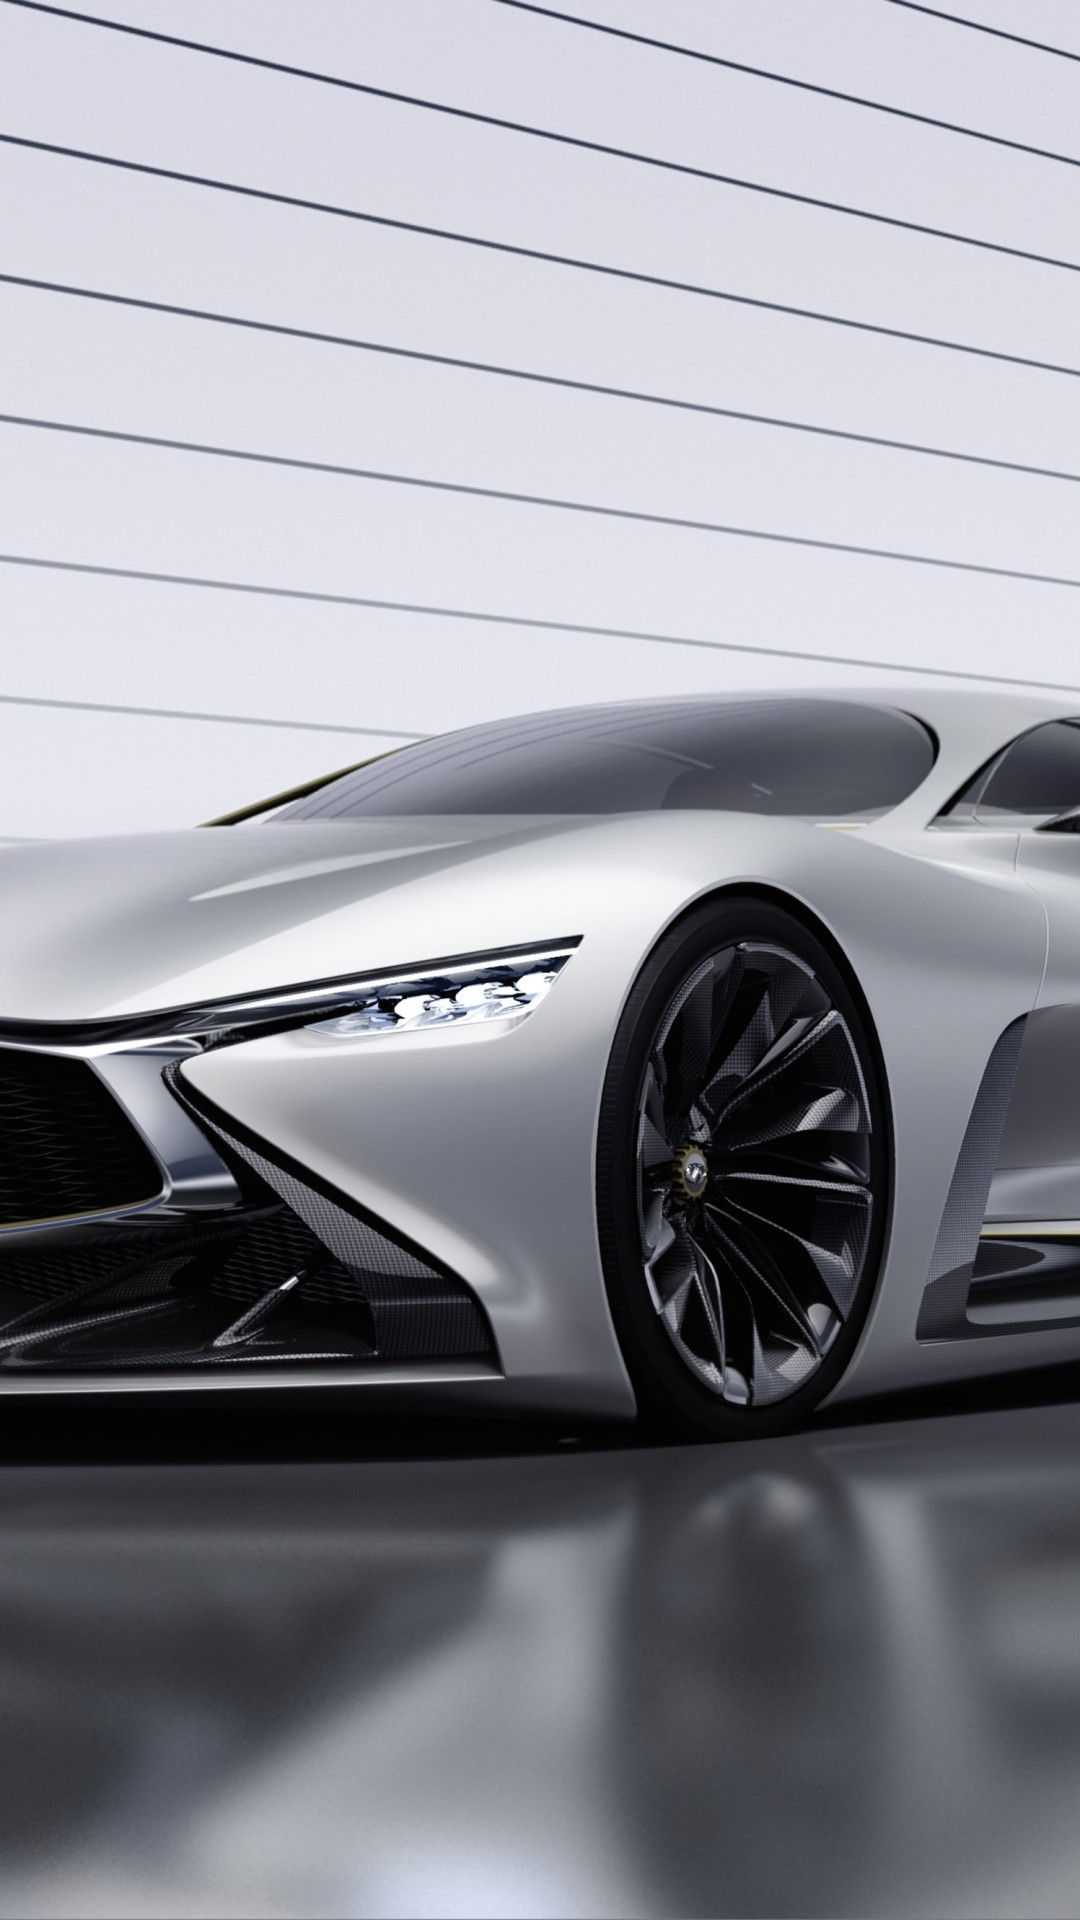 Infiniti Vision GT Concept Wallpaper for HTC One